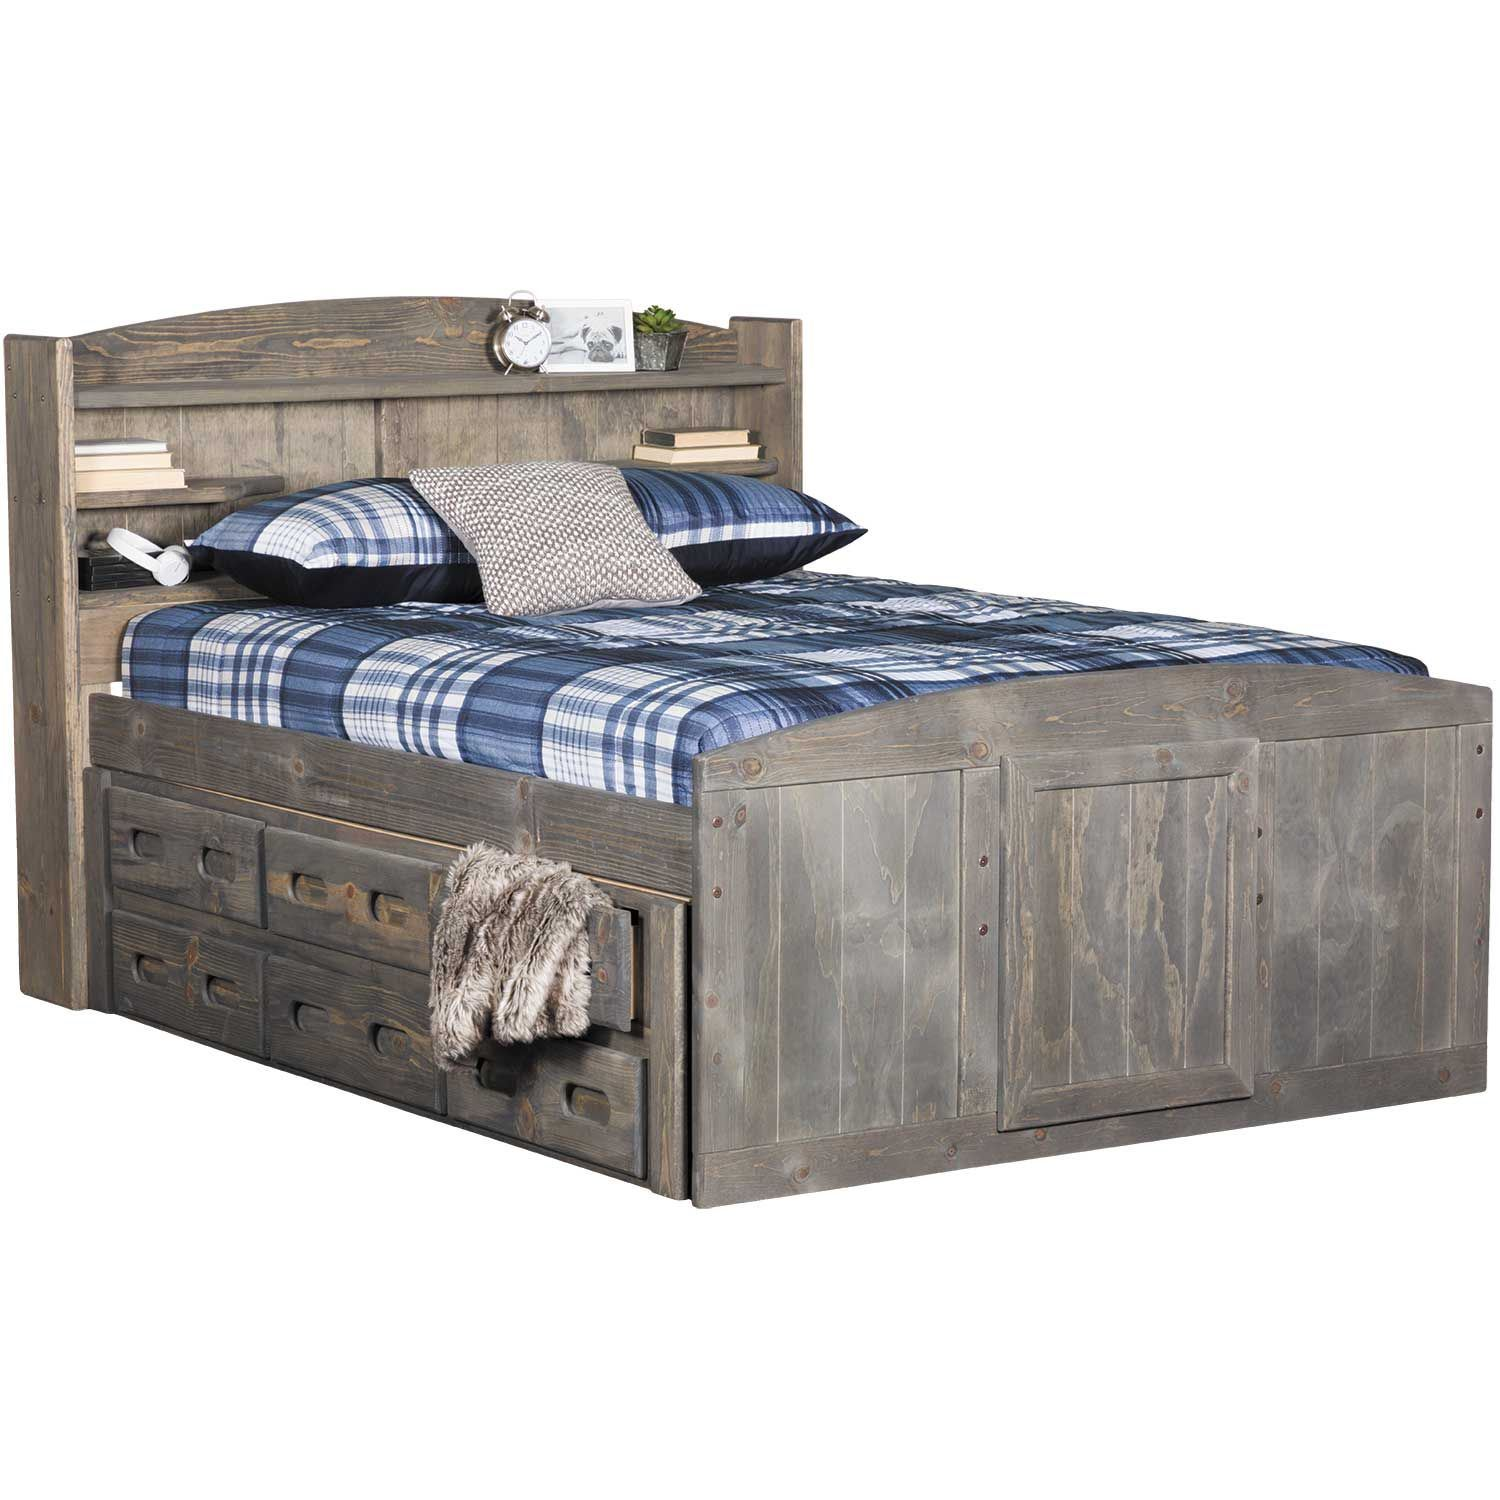 Palomino queen storage bed with two underbed storage units - Bed with storage underneath ...